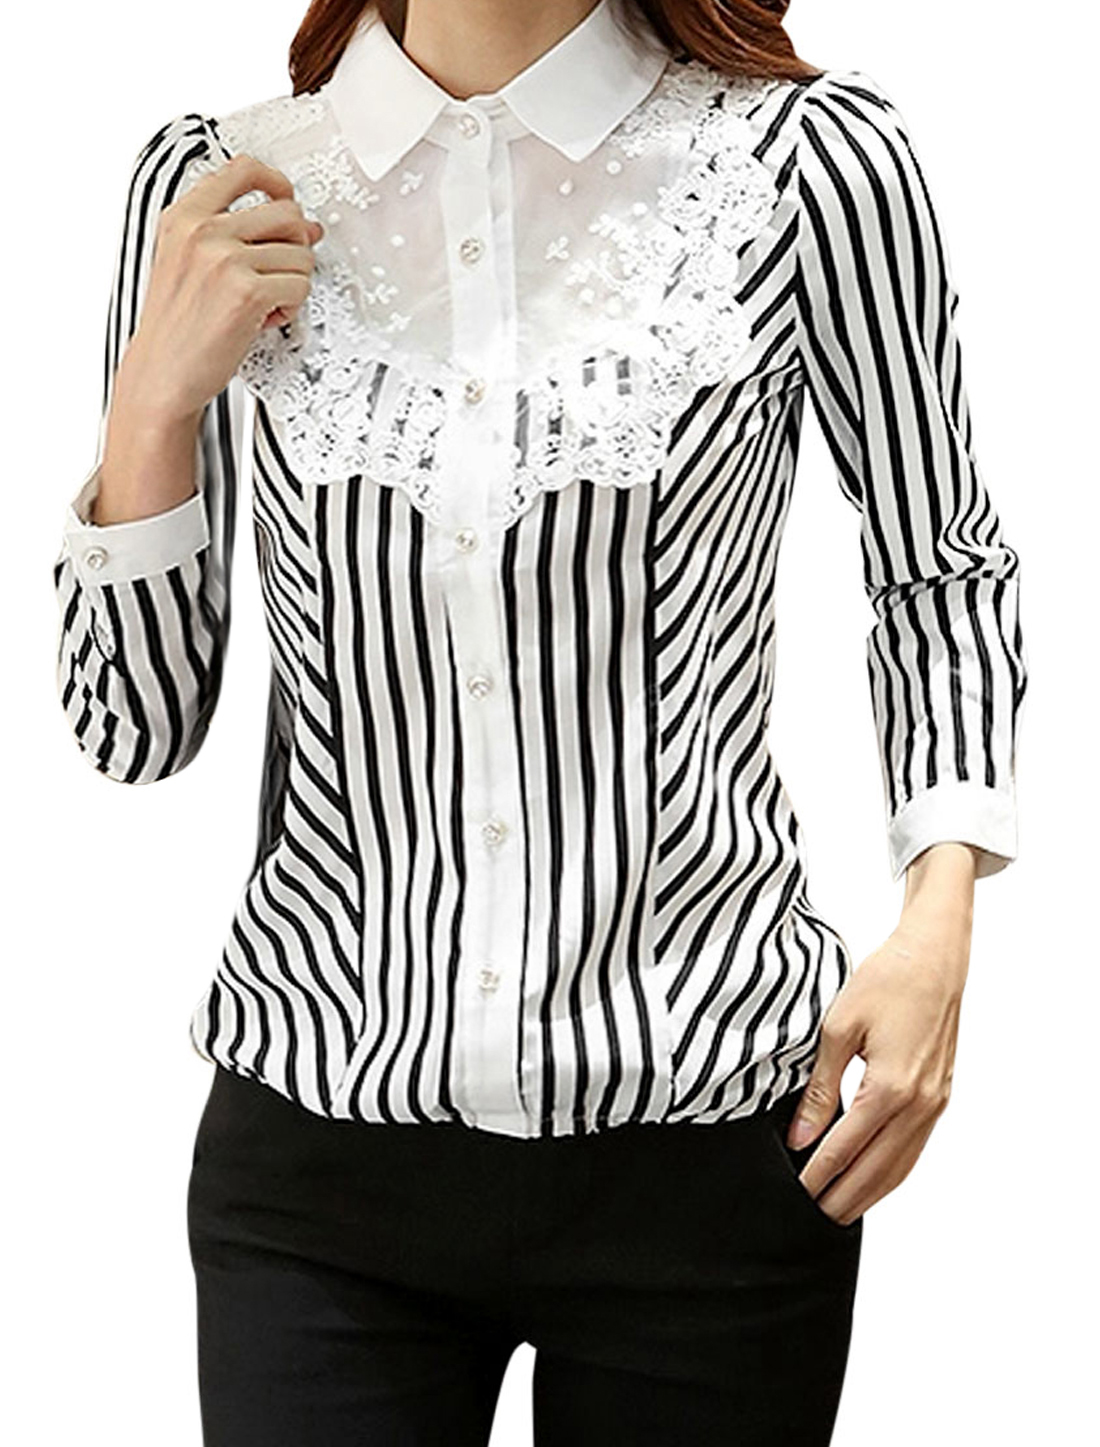 Women Stripes Lace Panel Single Breasted Elastic Hem Shirt Black White L